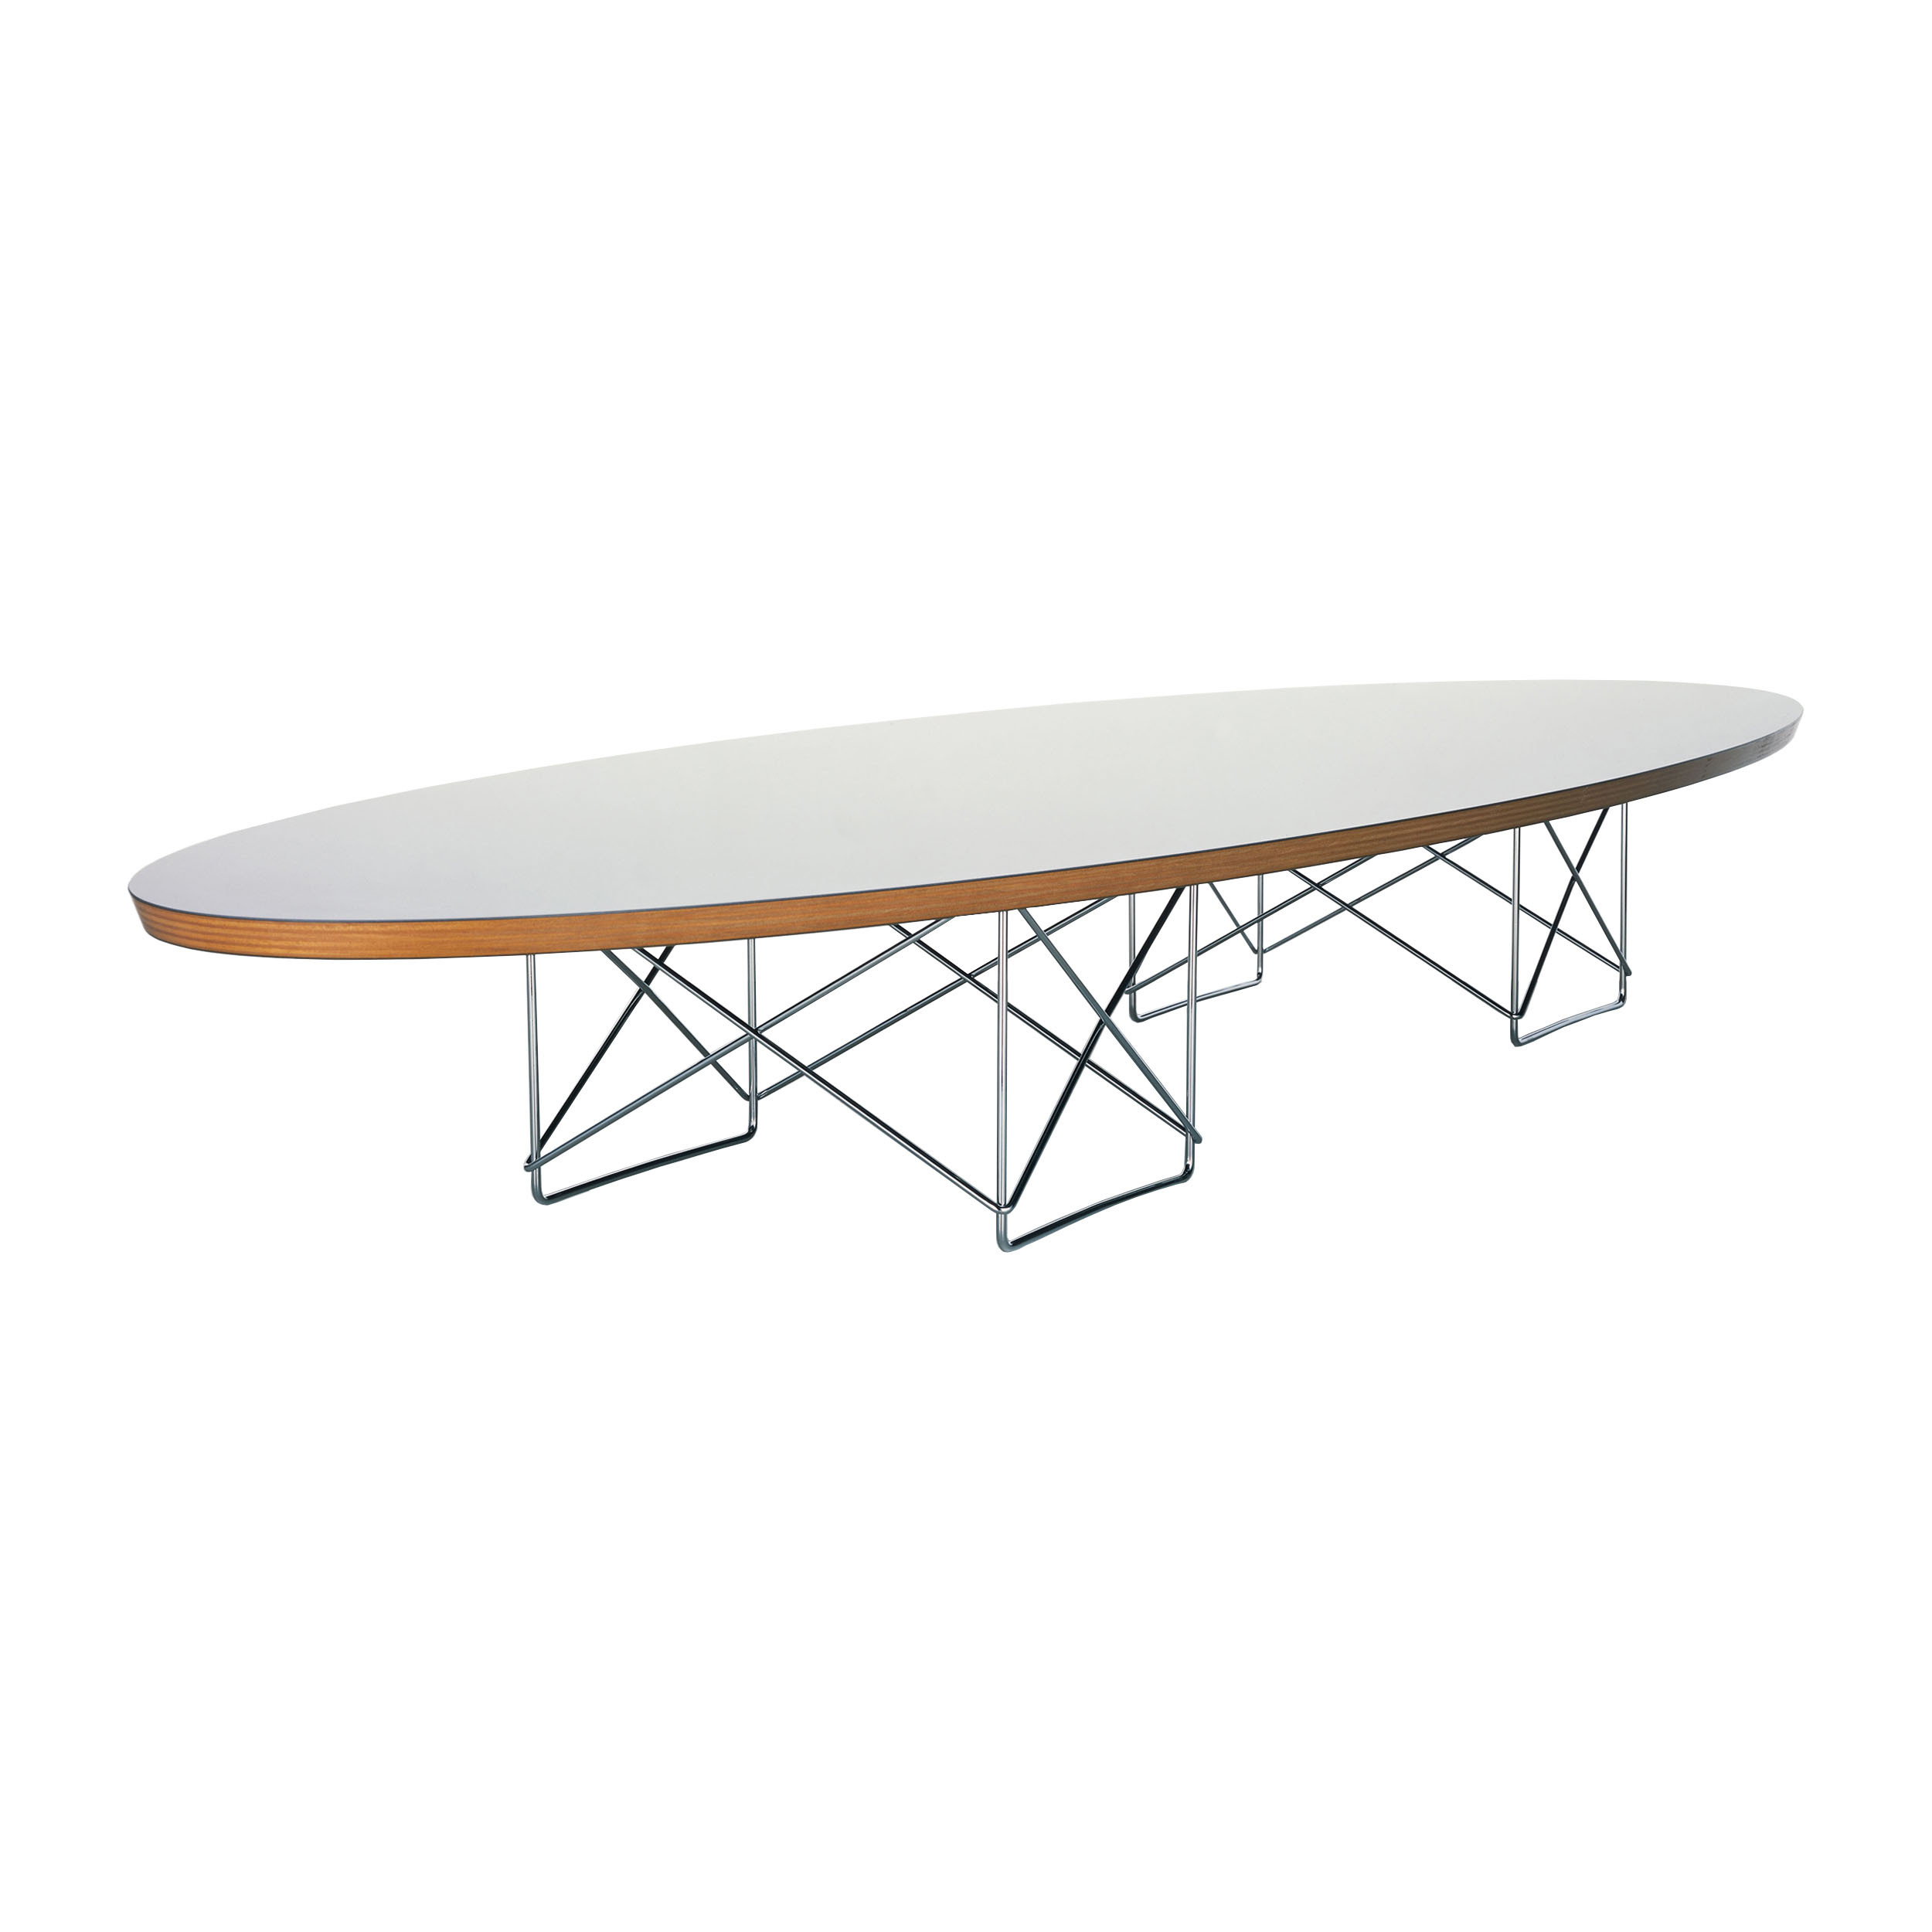 Eames Etr Elliptical Couchtisch Elliptical Table Etr Couchtisch A021163 000 Online